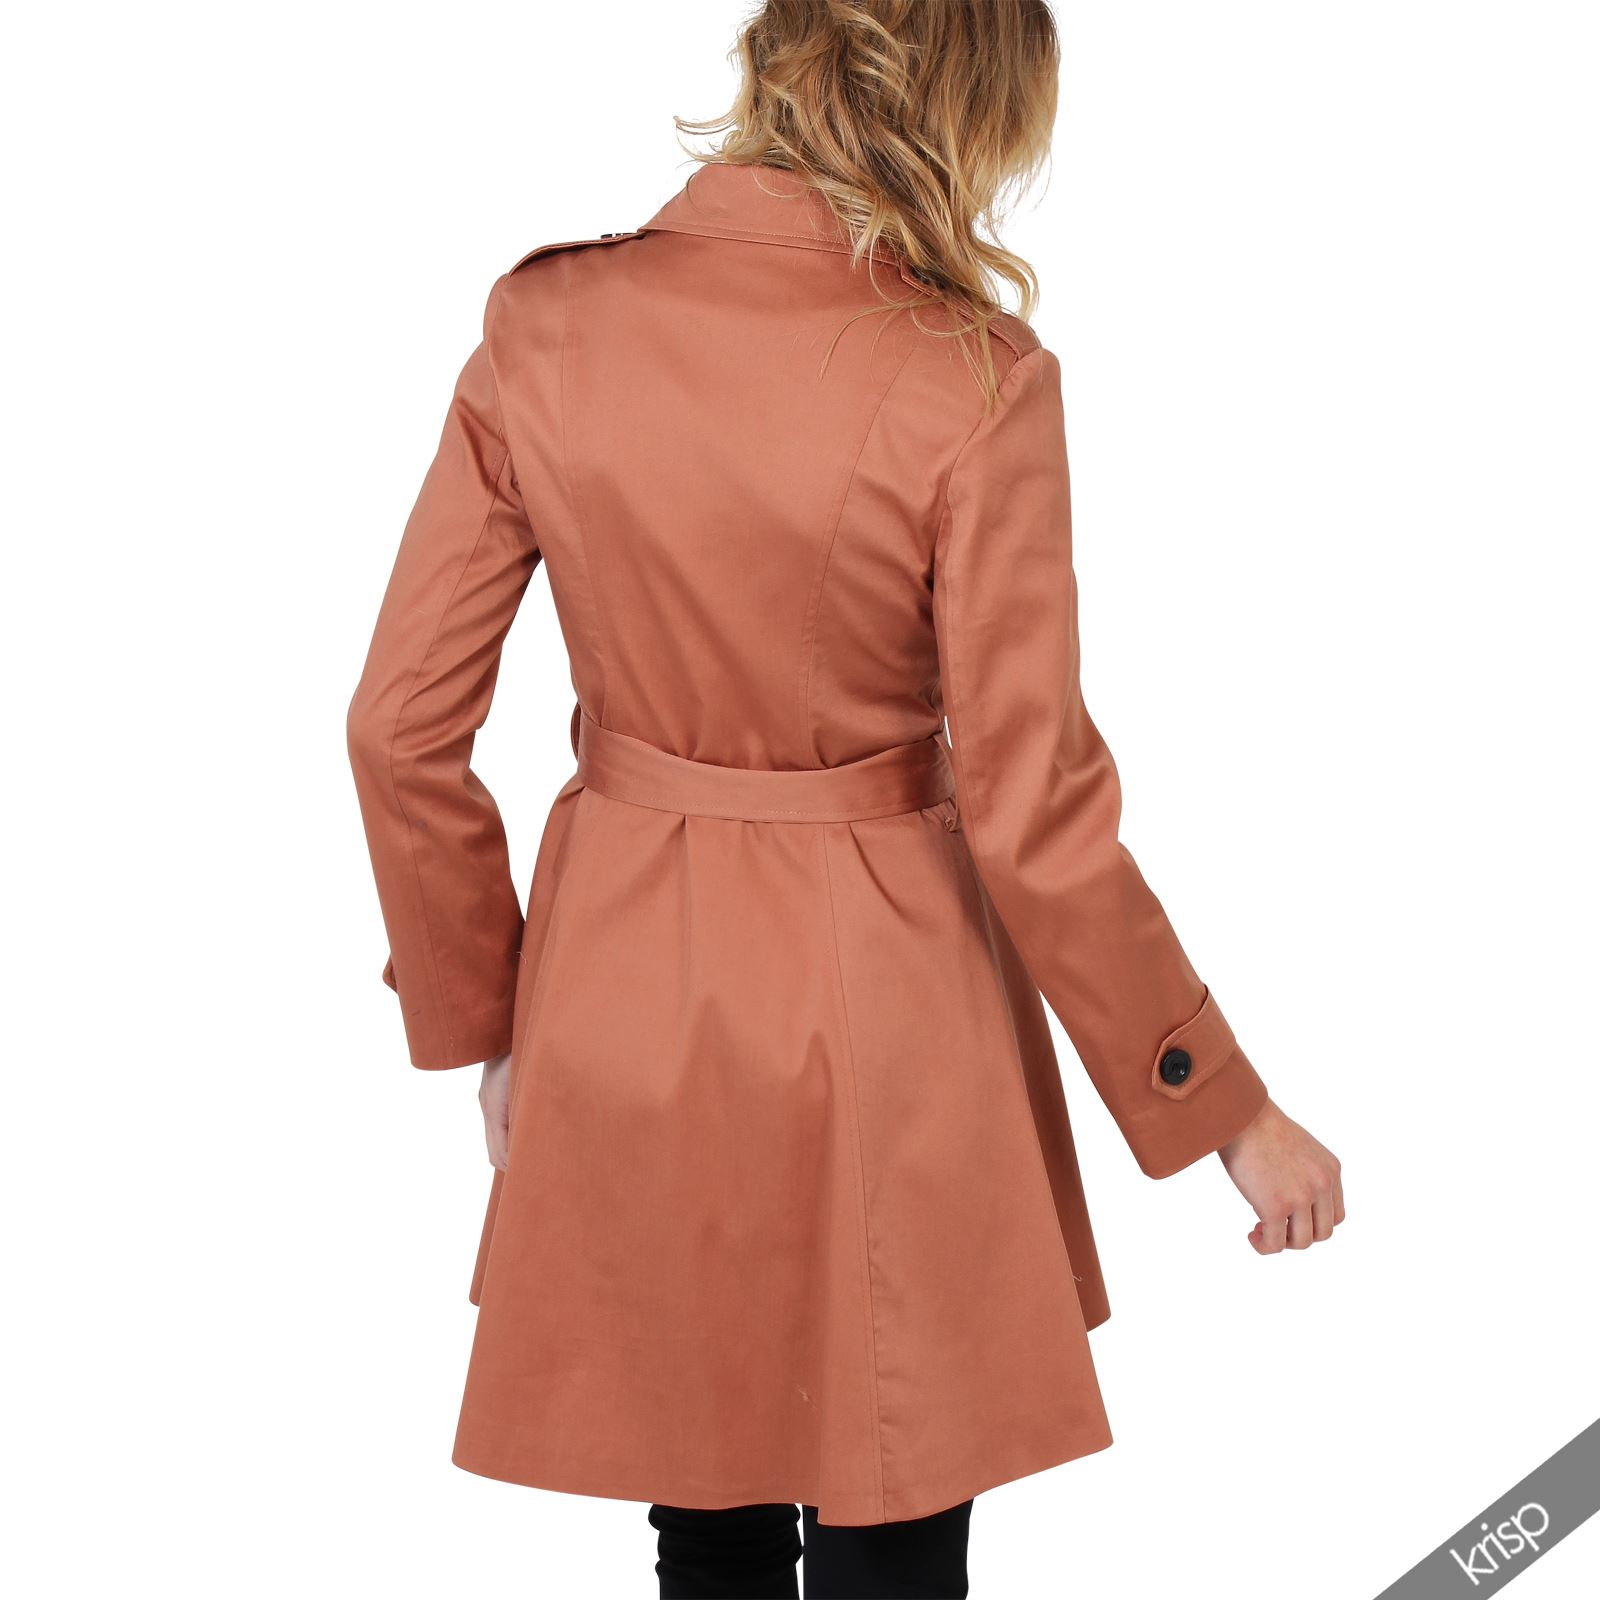 UK-Ladies-Classic-Asymmetric-Mac-Jacket-Womens-Military-Belted-Trench-Coat thumbnail 14